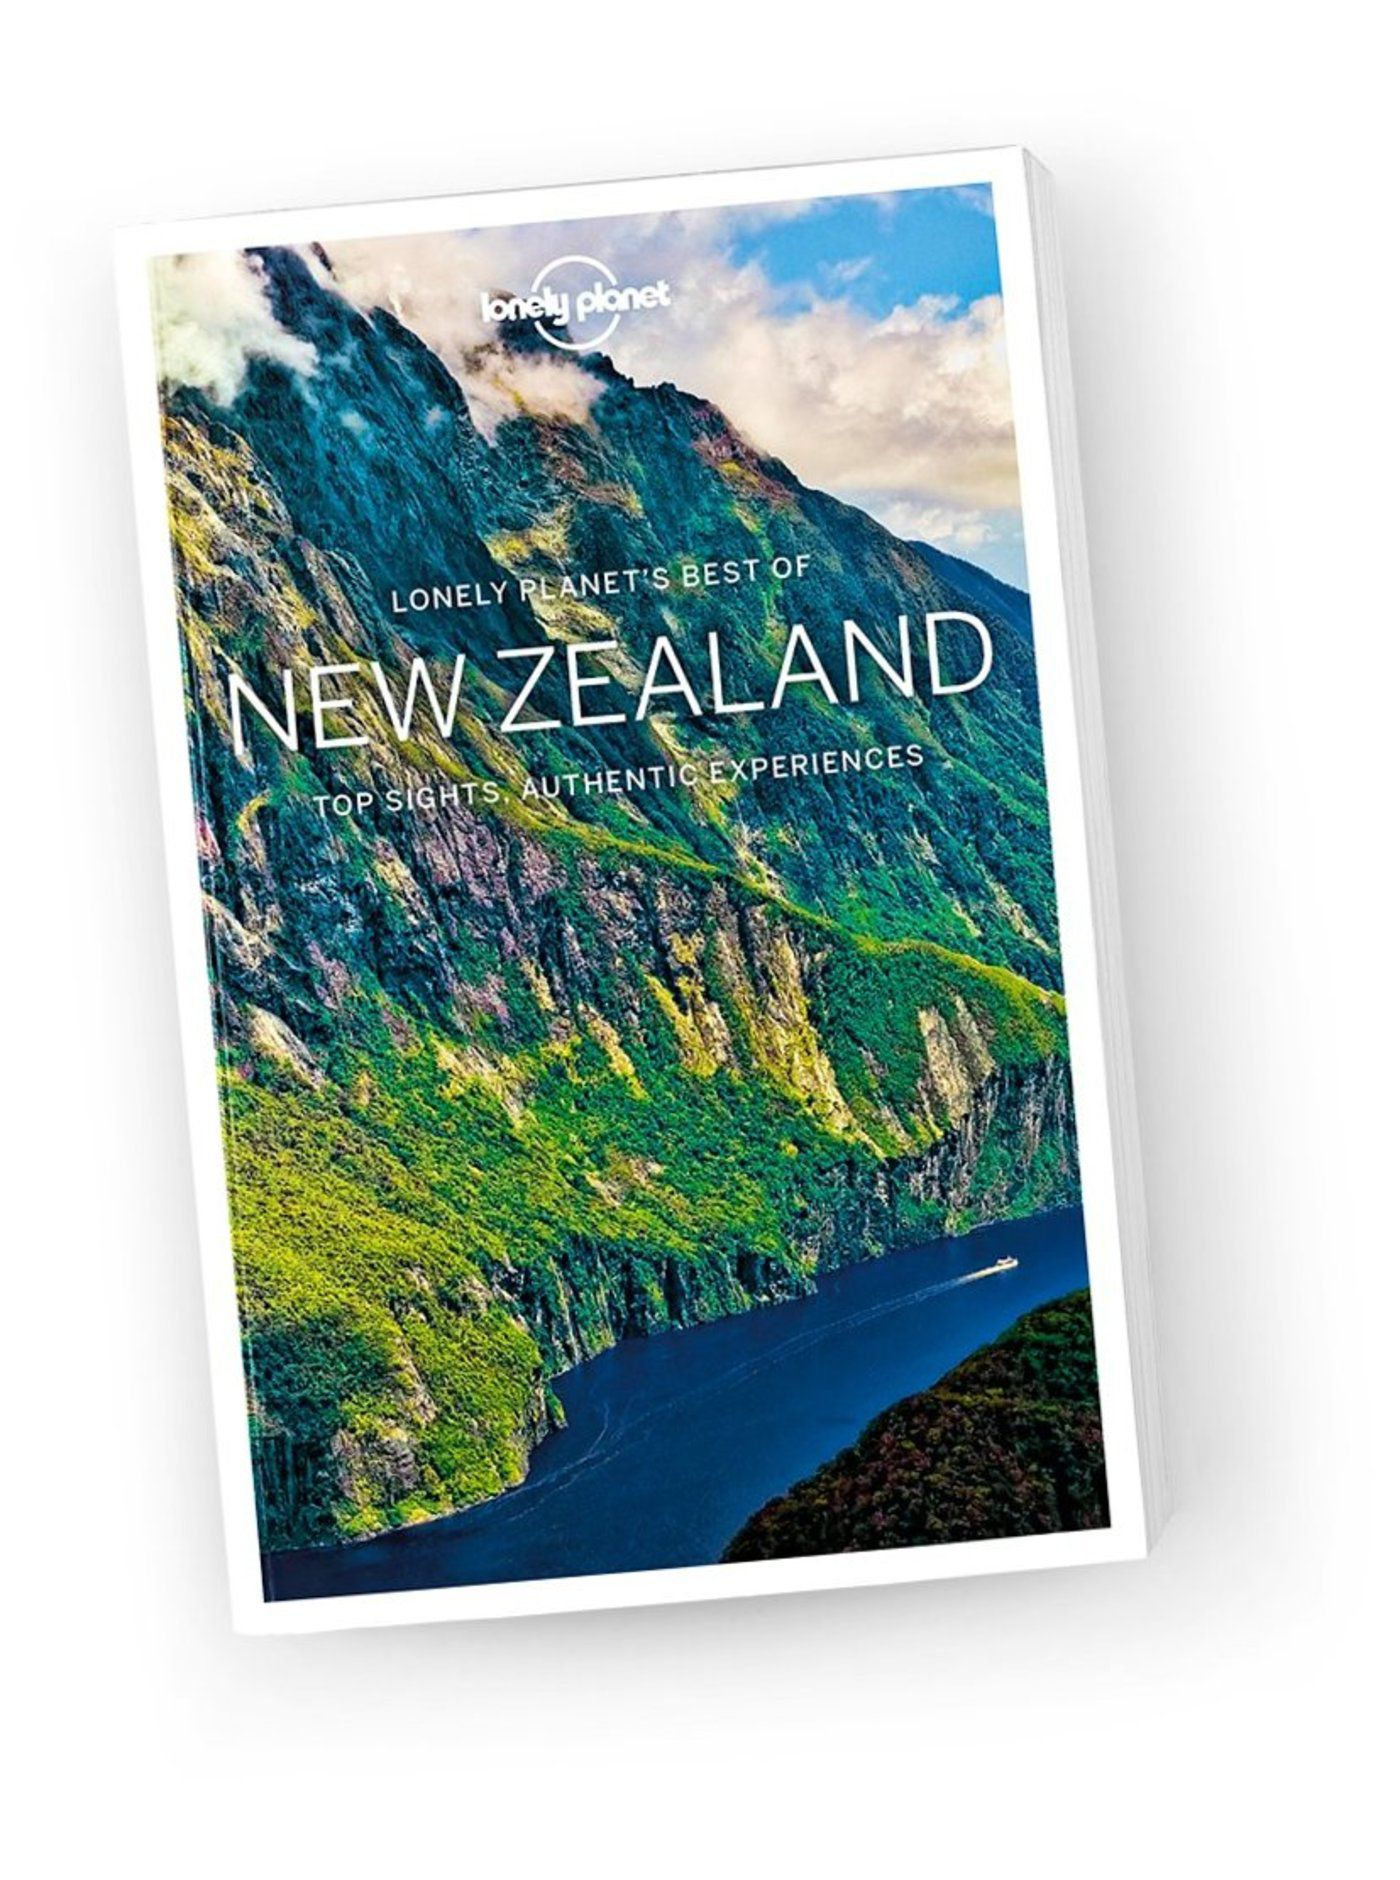 Best of New Zealand travel guide